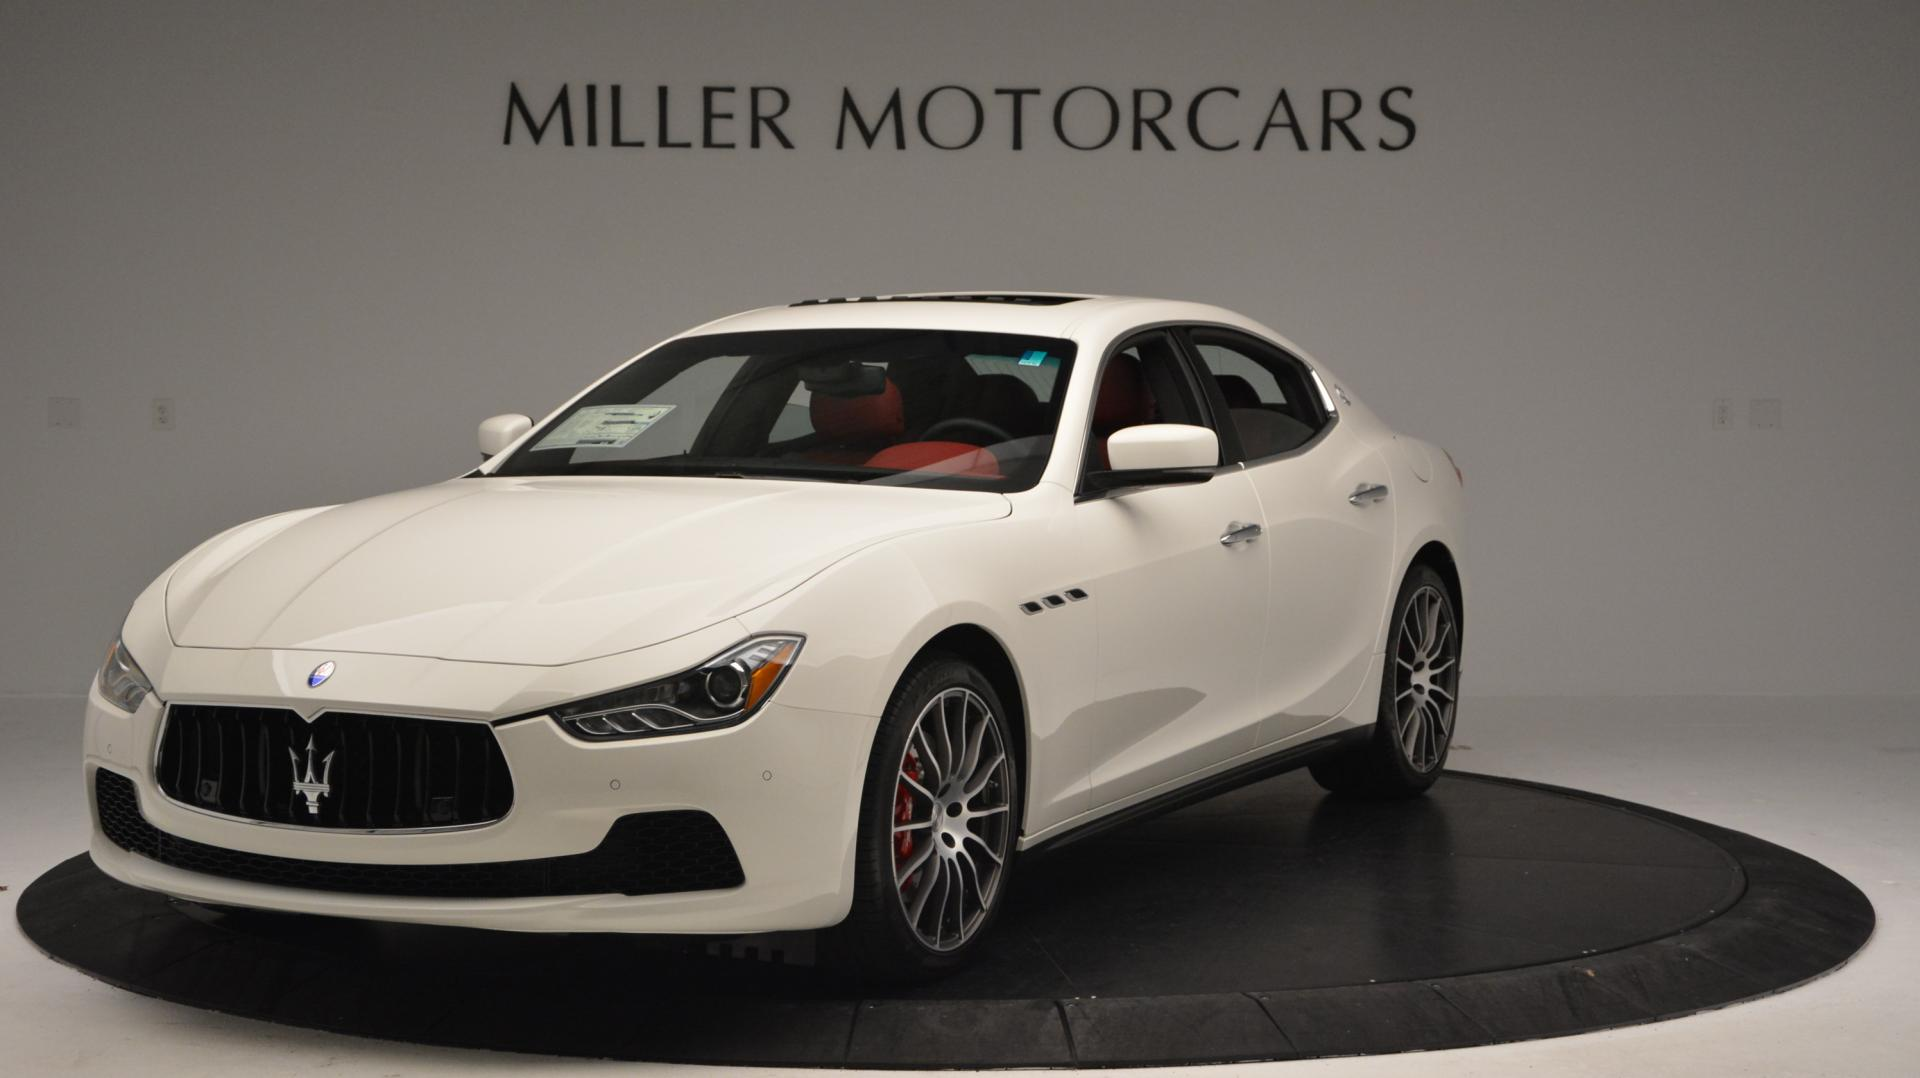 New 2016 Maserati Ghibli S Q4 for sale Sold at Bentley Greenwich in Greenwich CT 06830 1